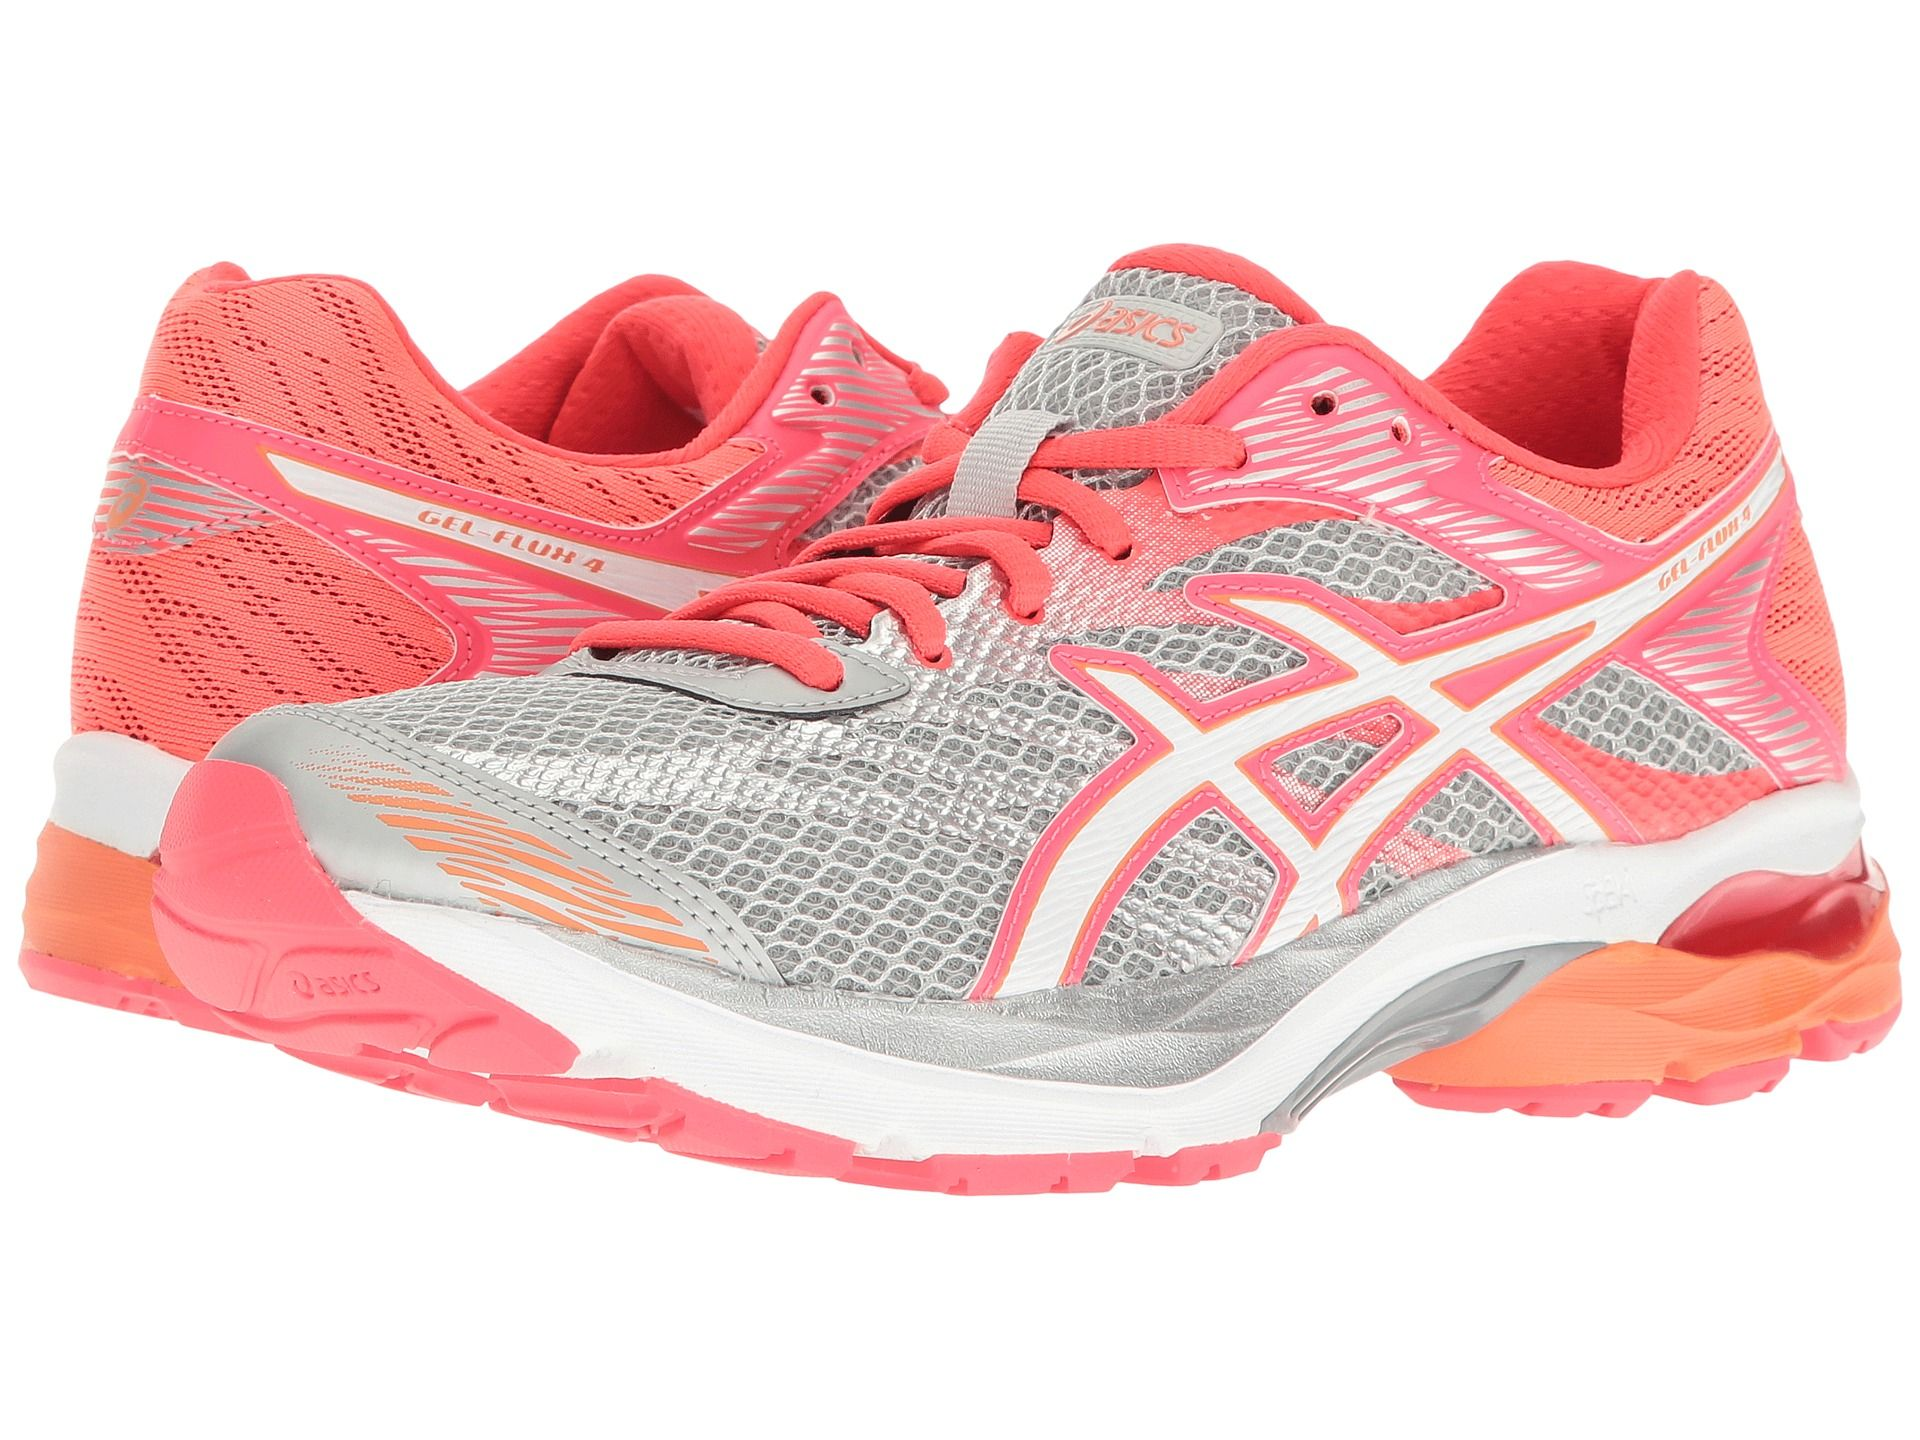 ASICS GEL Flux 4 at | Customers Favorite Things